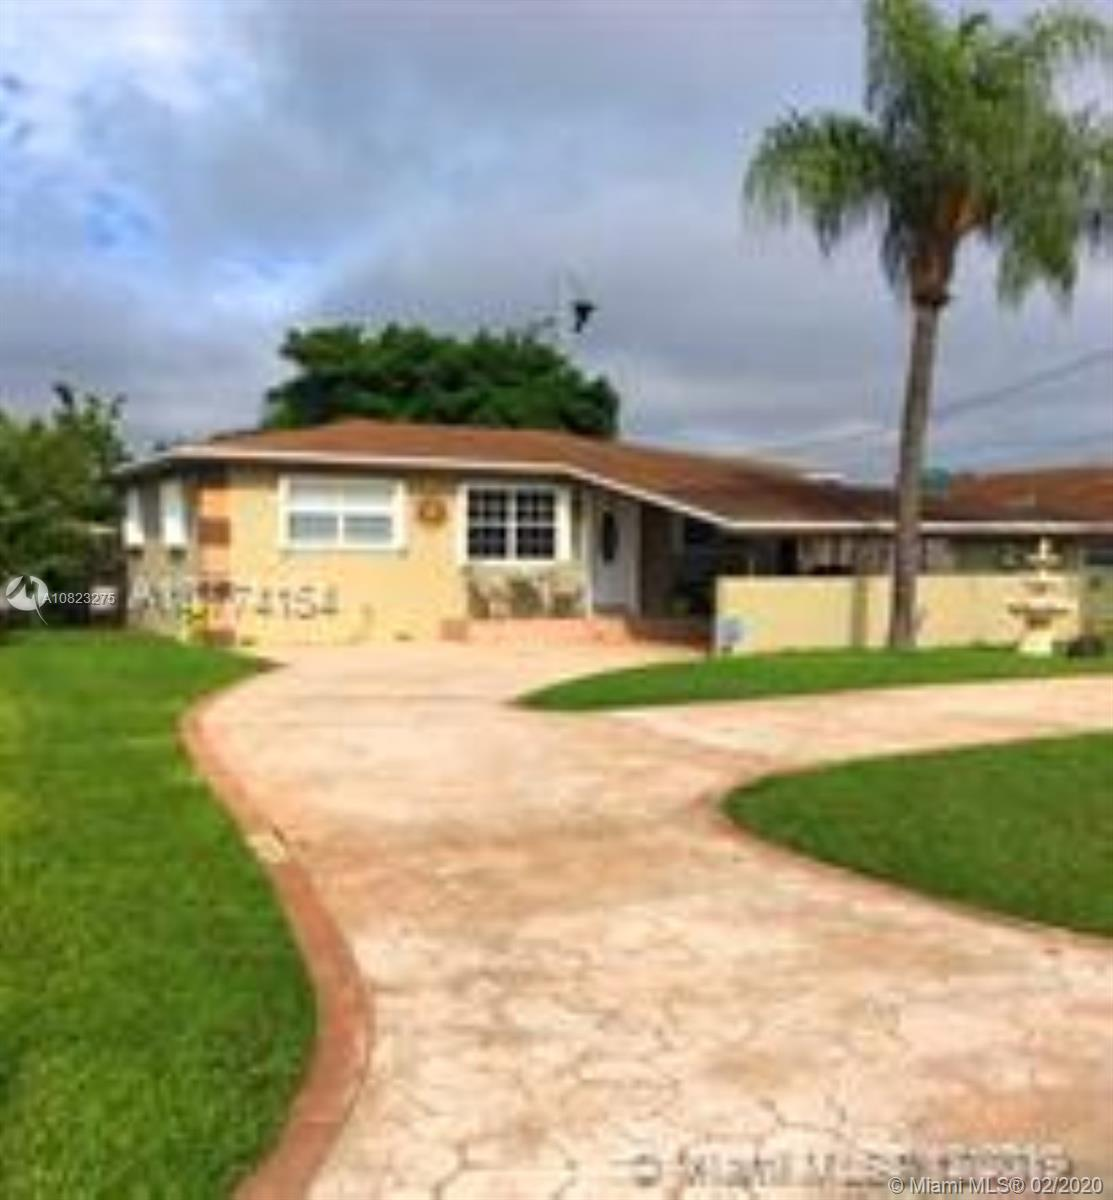 6525 Pines Pkwy, Hollywood, Florida 33023, 3 Bedrooms Bedrooms, ,2 BathroomsBathrooms,Residential,For Sale,6525 Pines Pkwy,A10823275